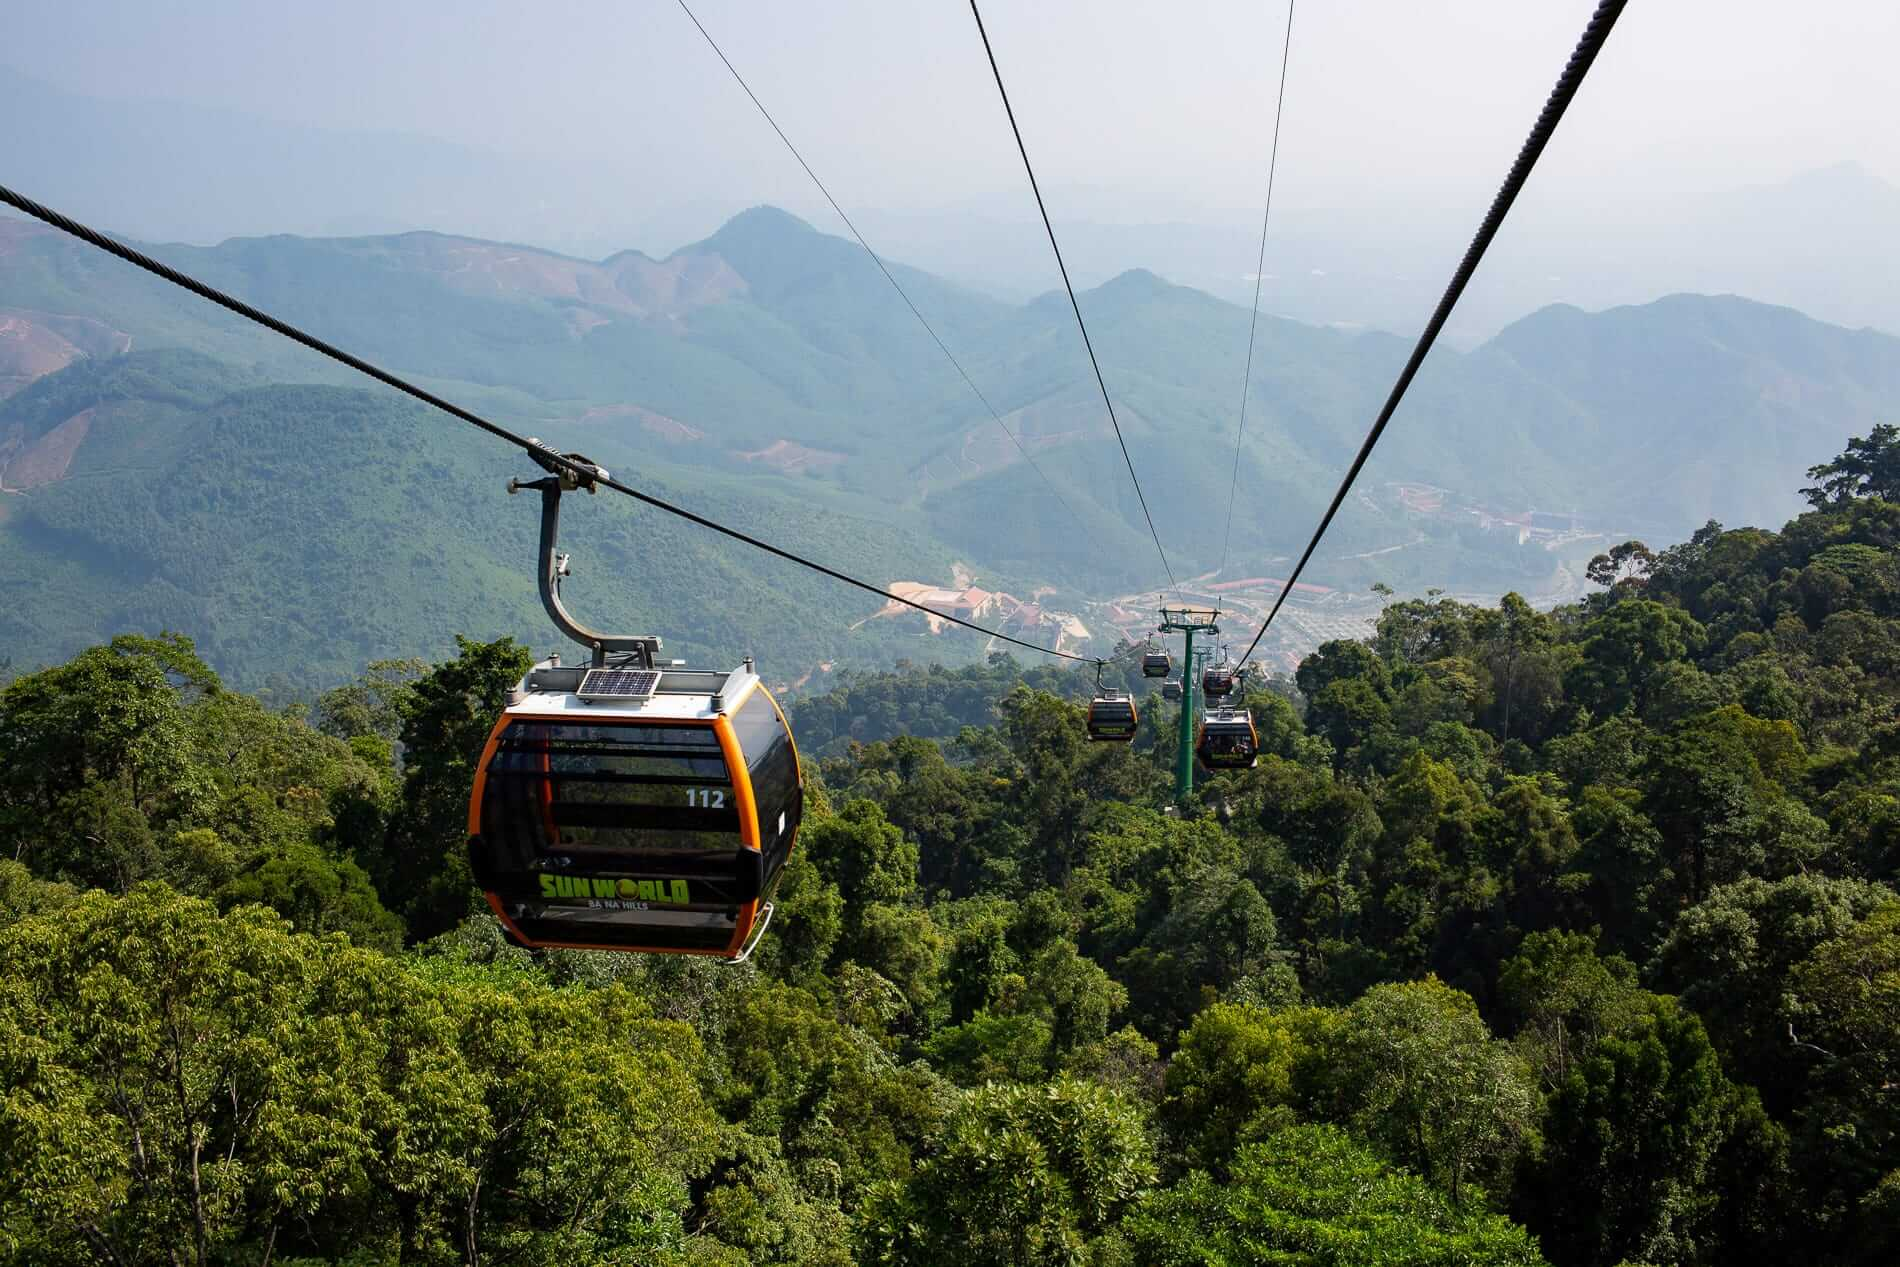 cable cars bring passengers to Ba Na Hills from Da Nang